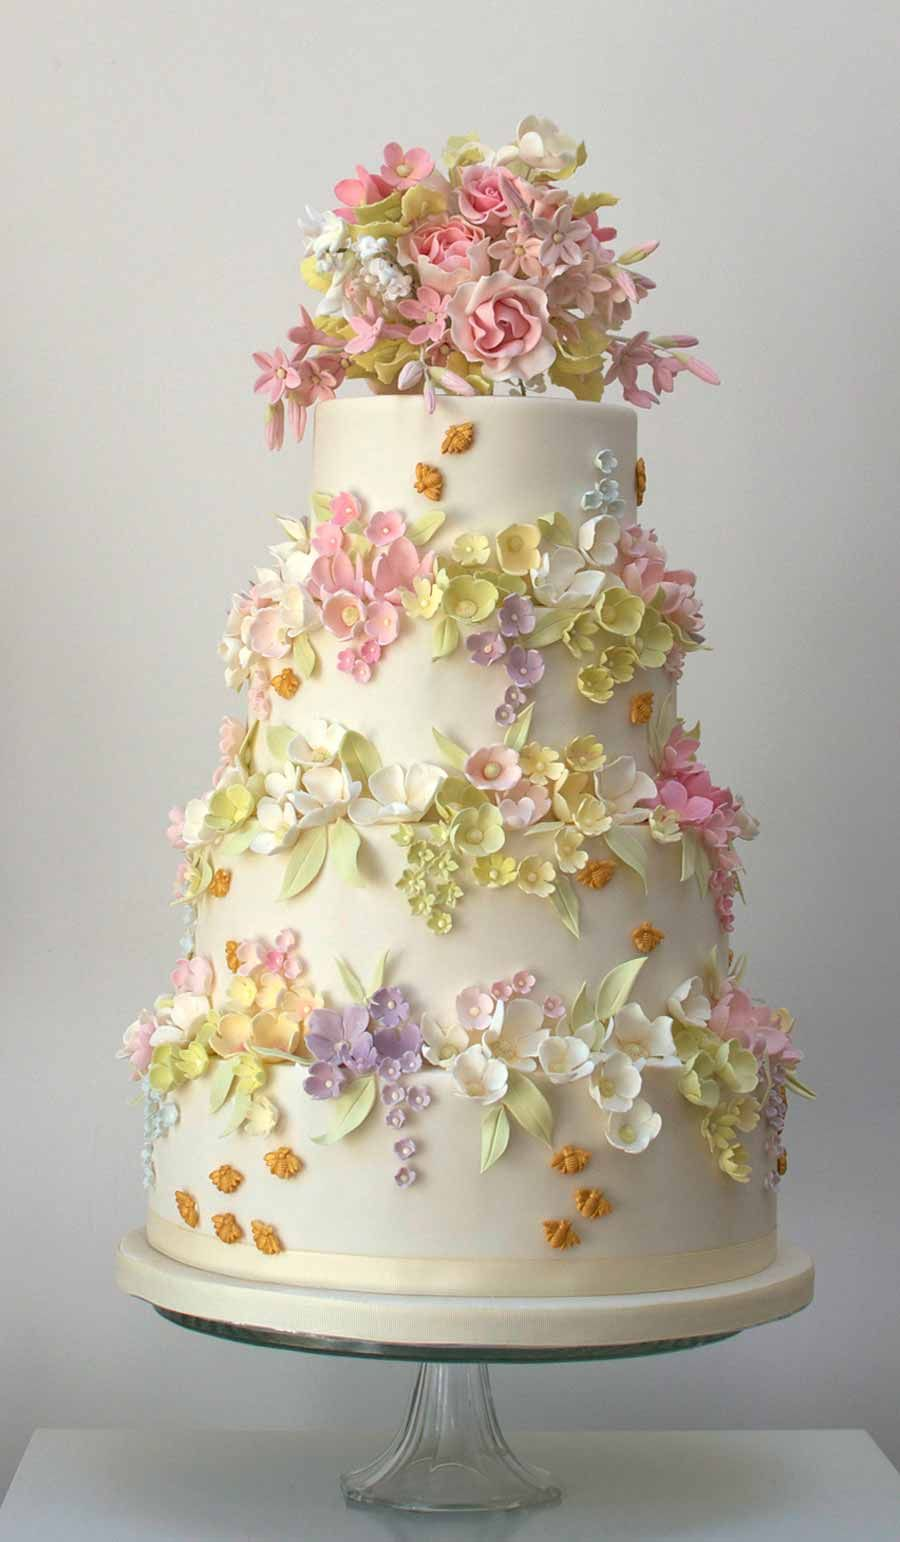 Absolutely Beautiful Flowers On This Wedding Cake